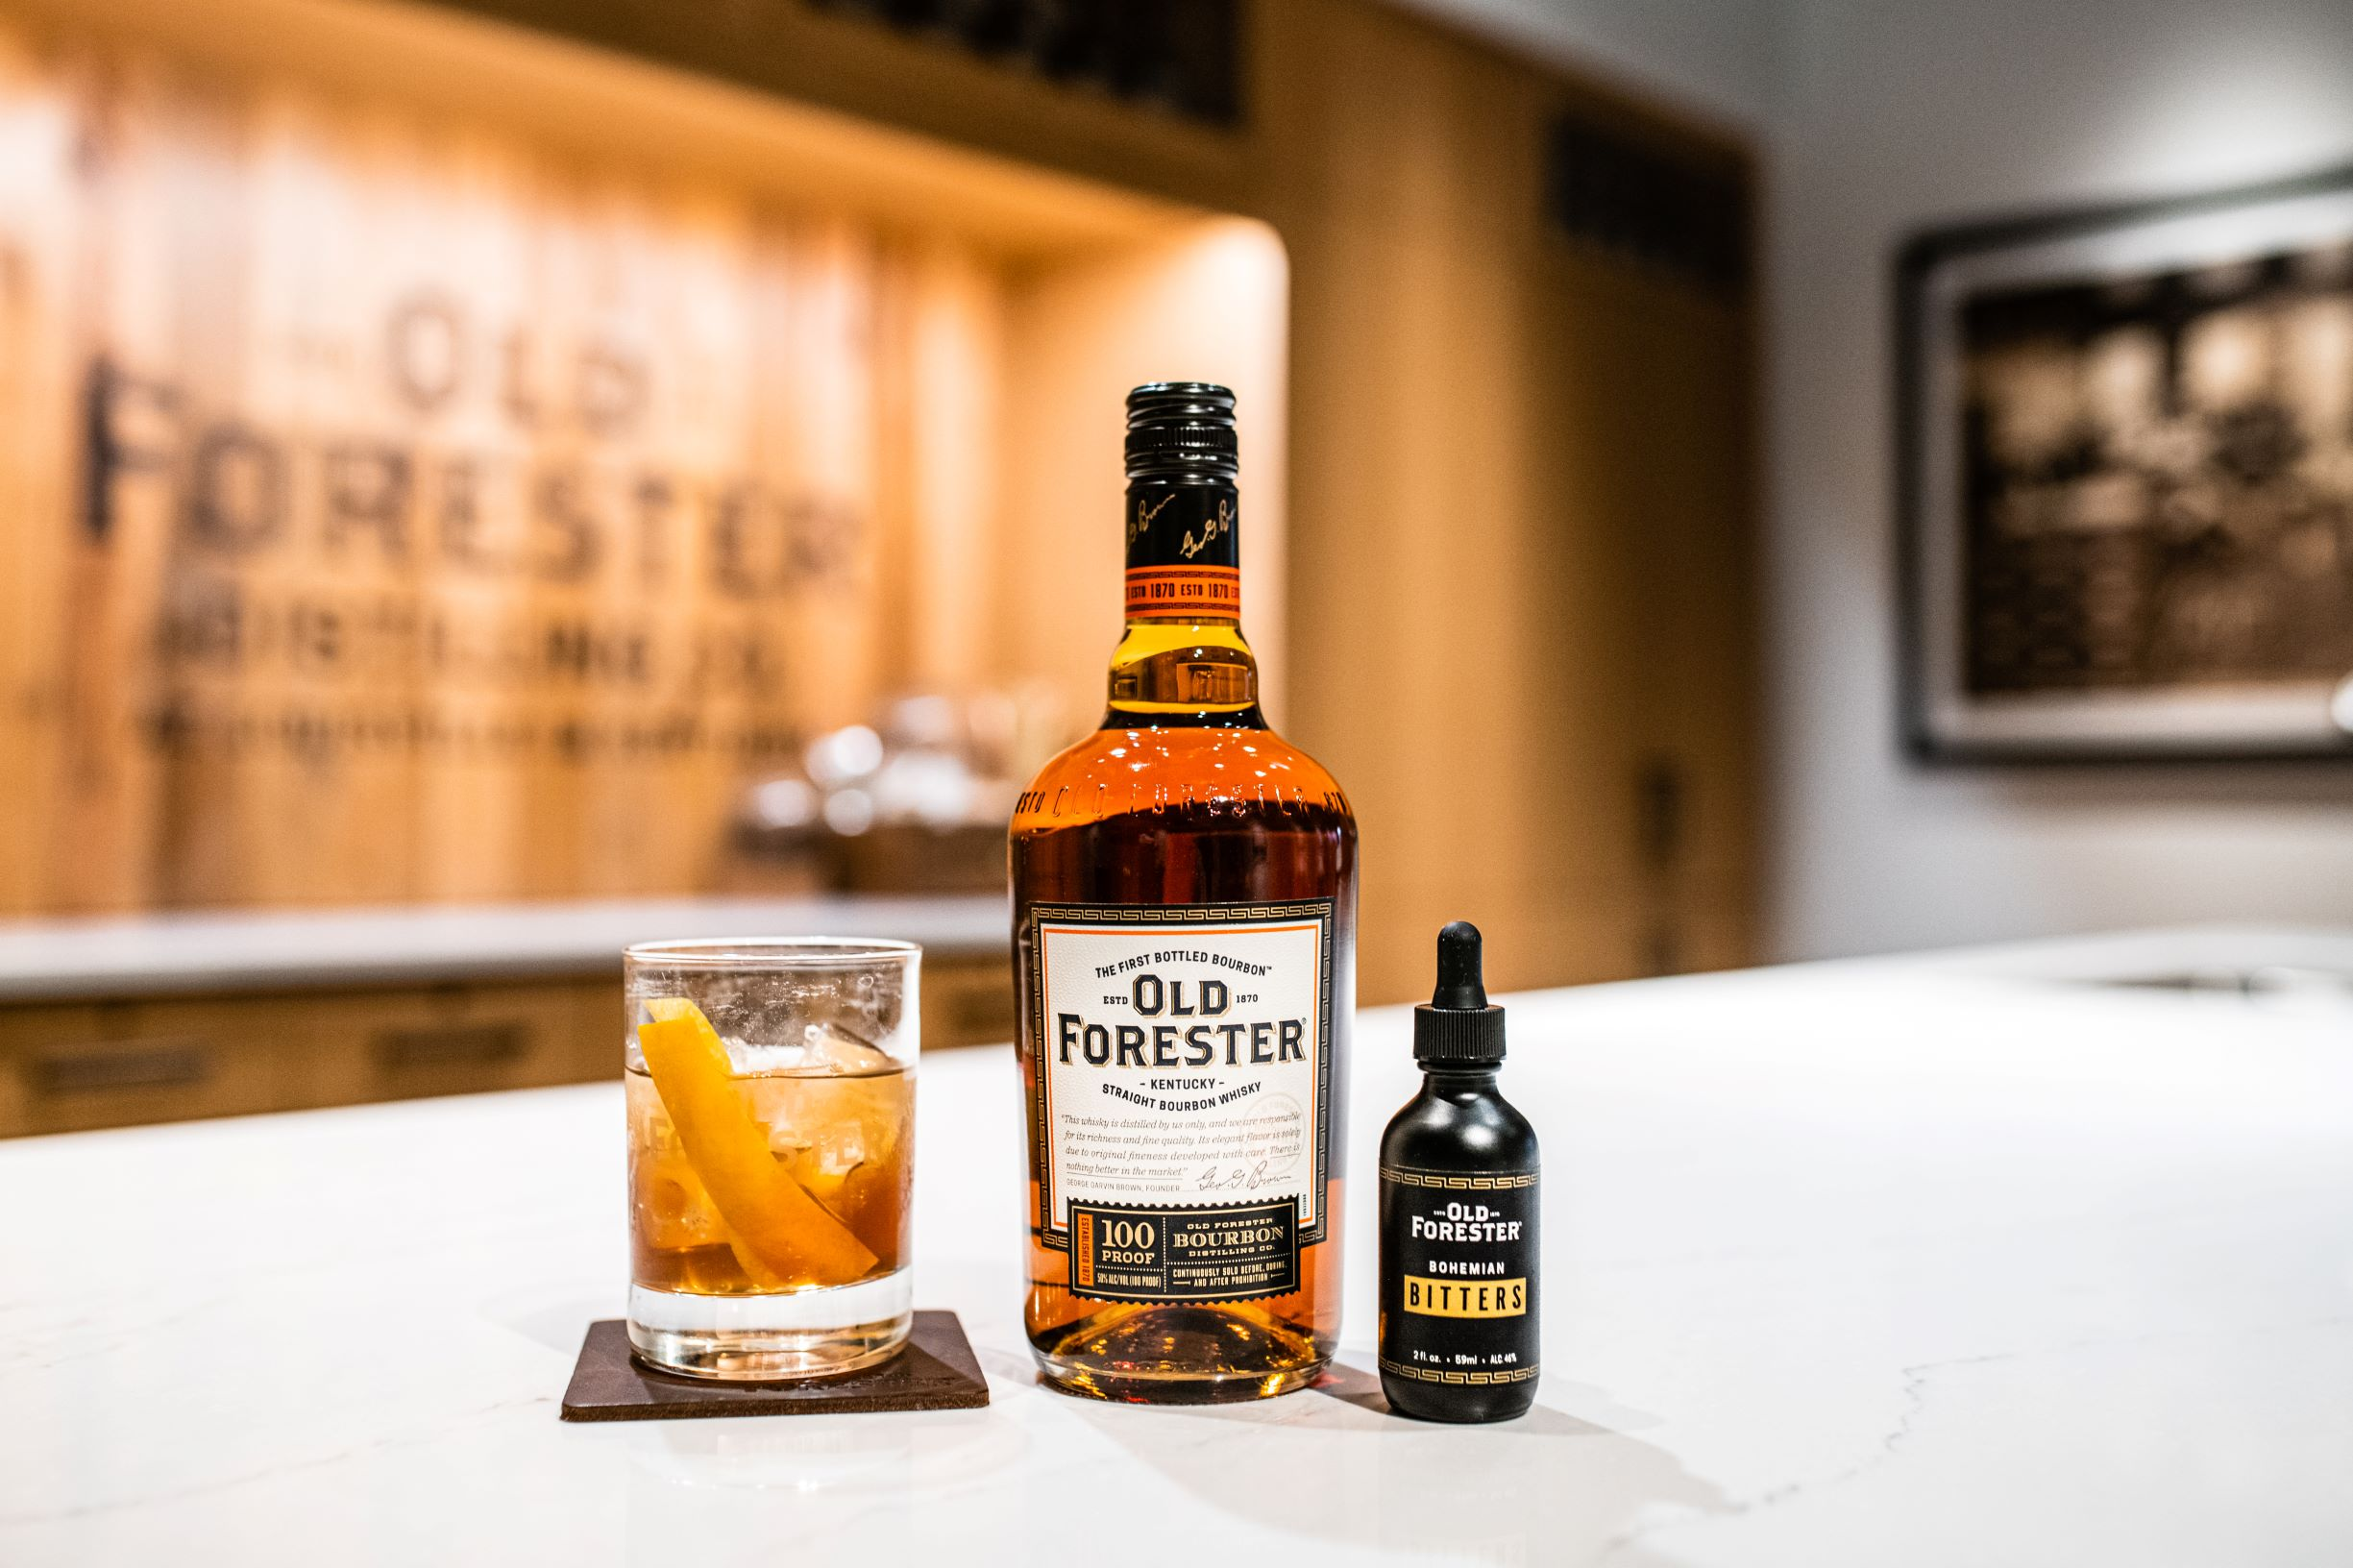 Old Forester 100 Proof Old Fashioned